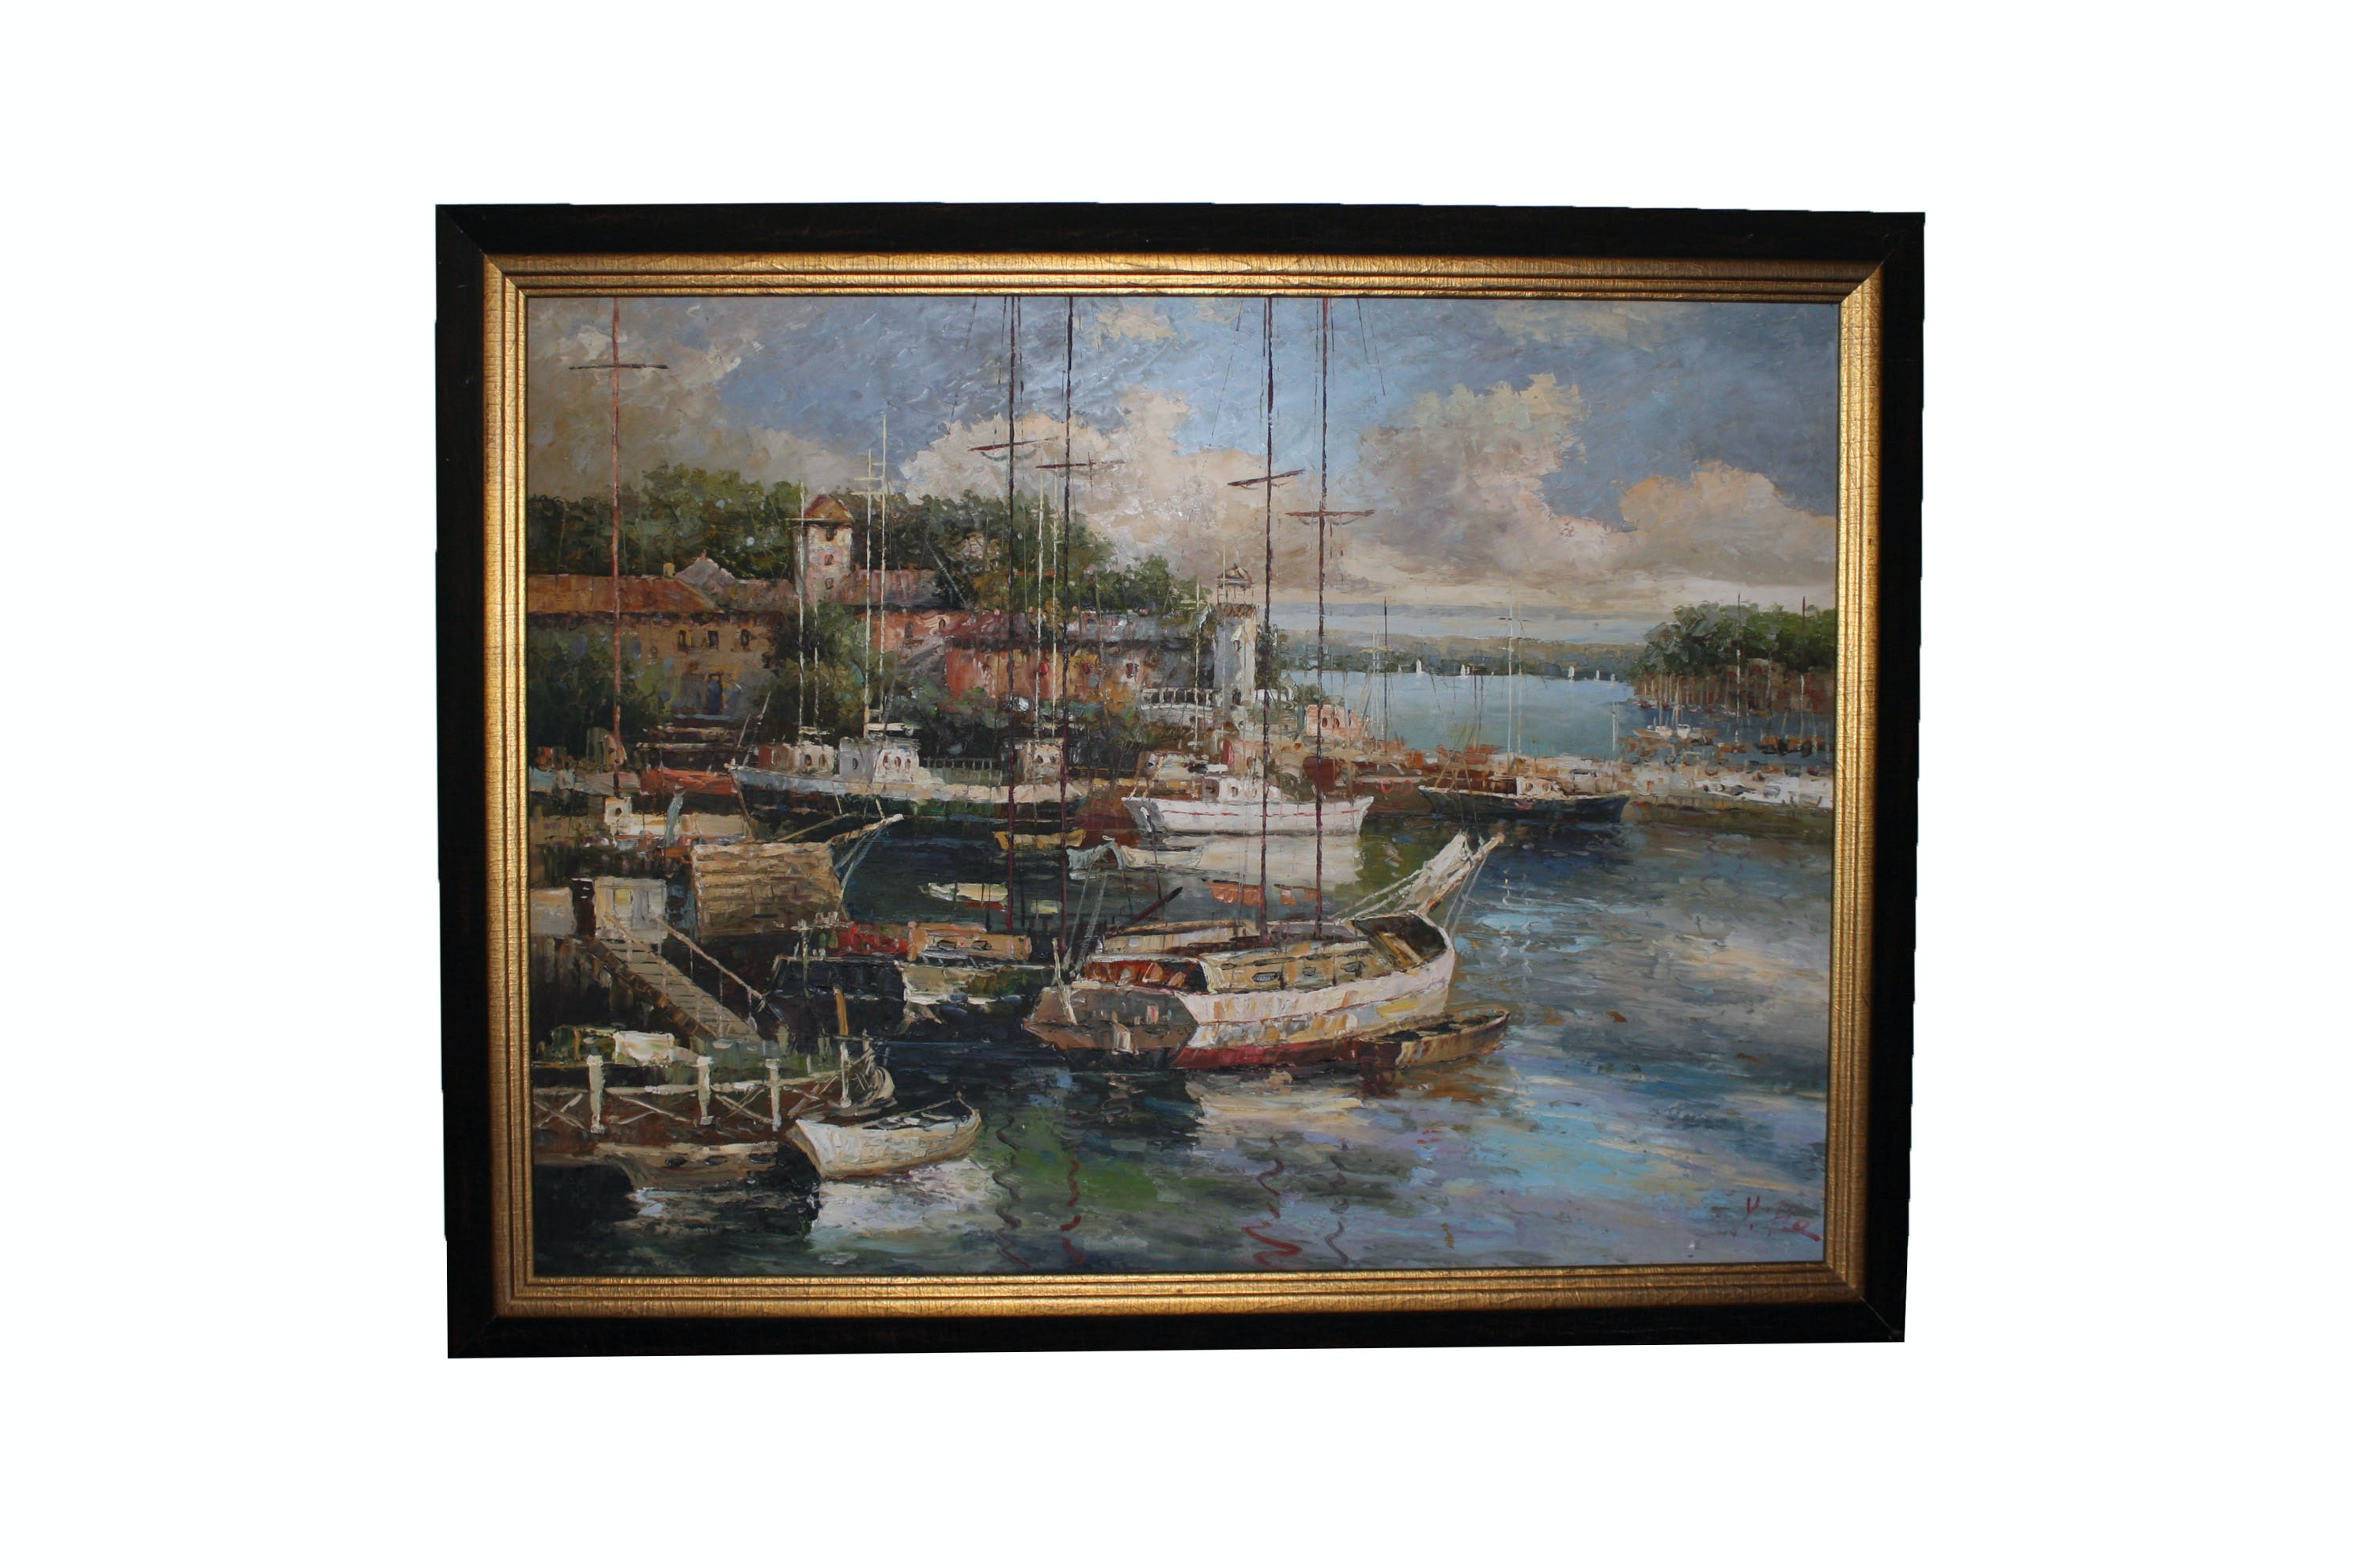 Y. Fie Acrylic Painting of a Harbor